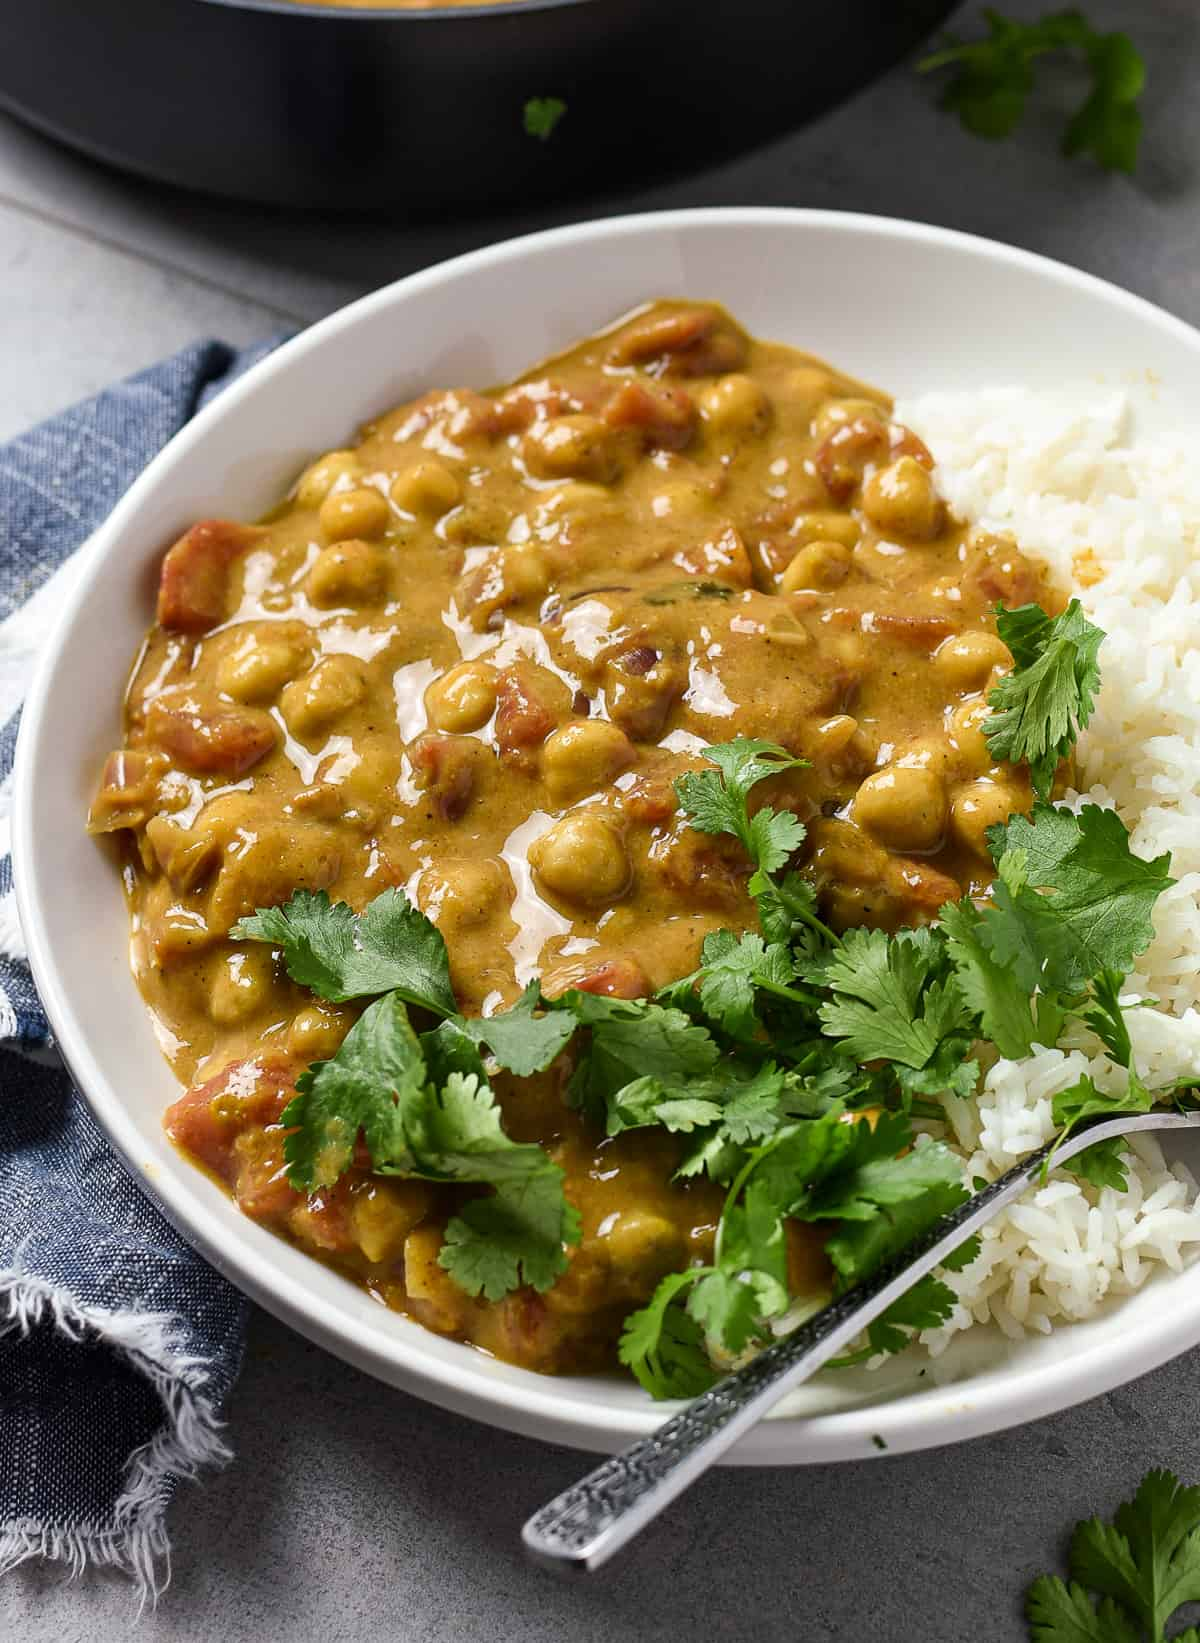 Curry and rice with cilantro on plate.